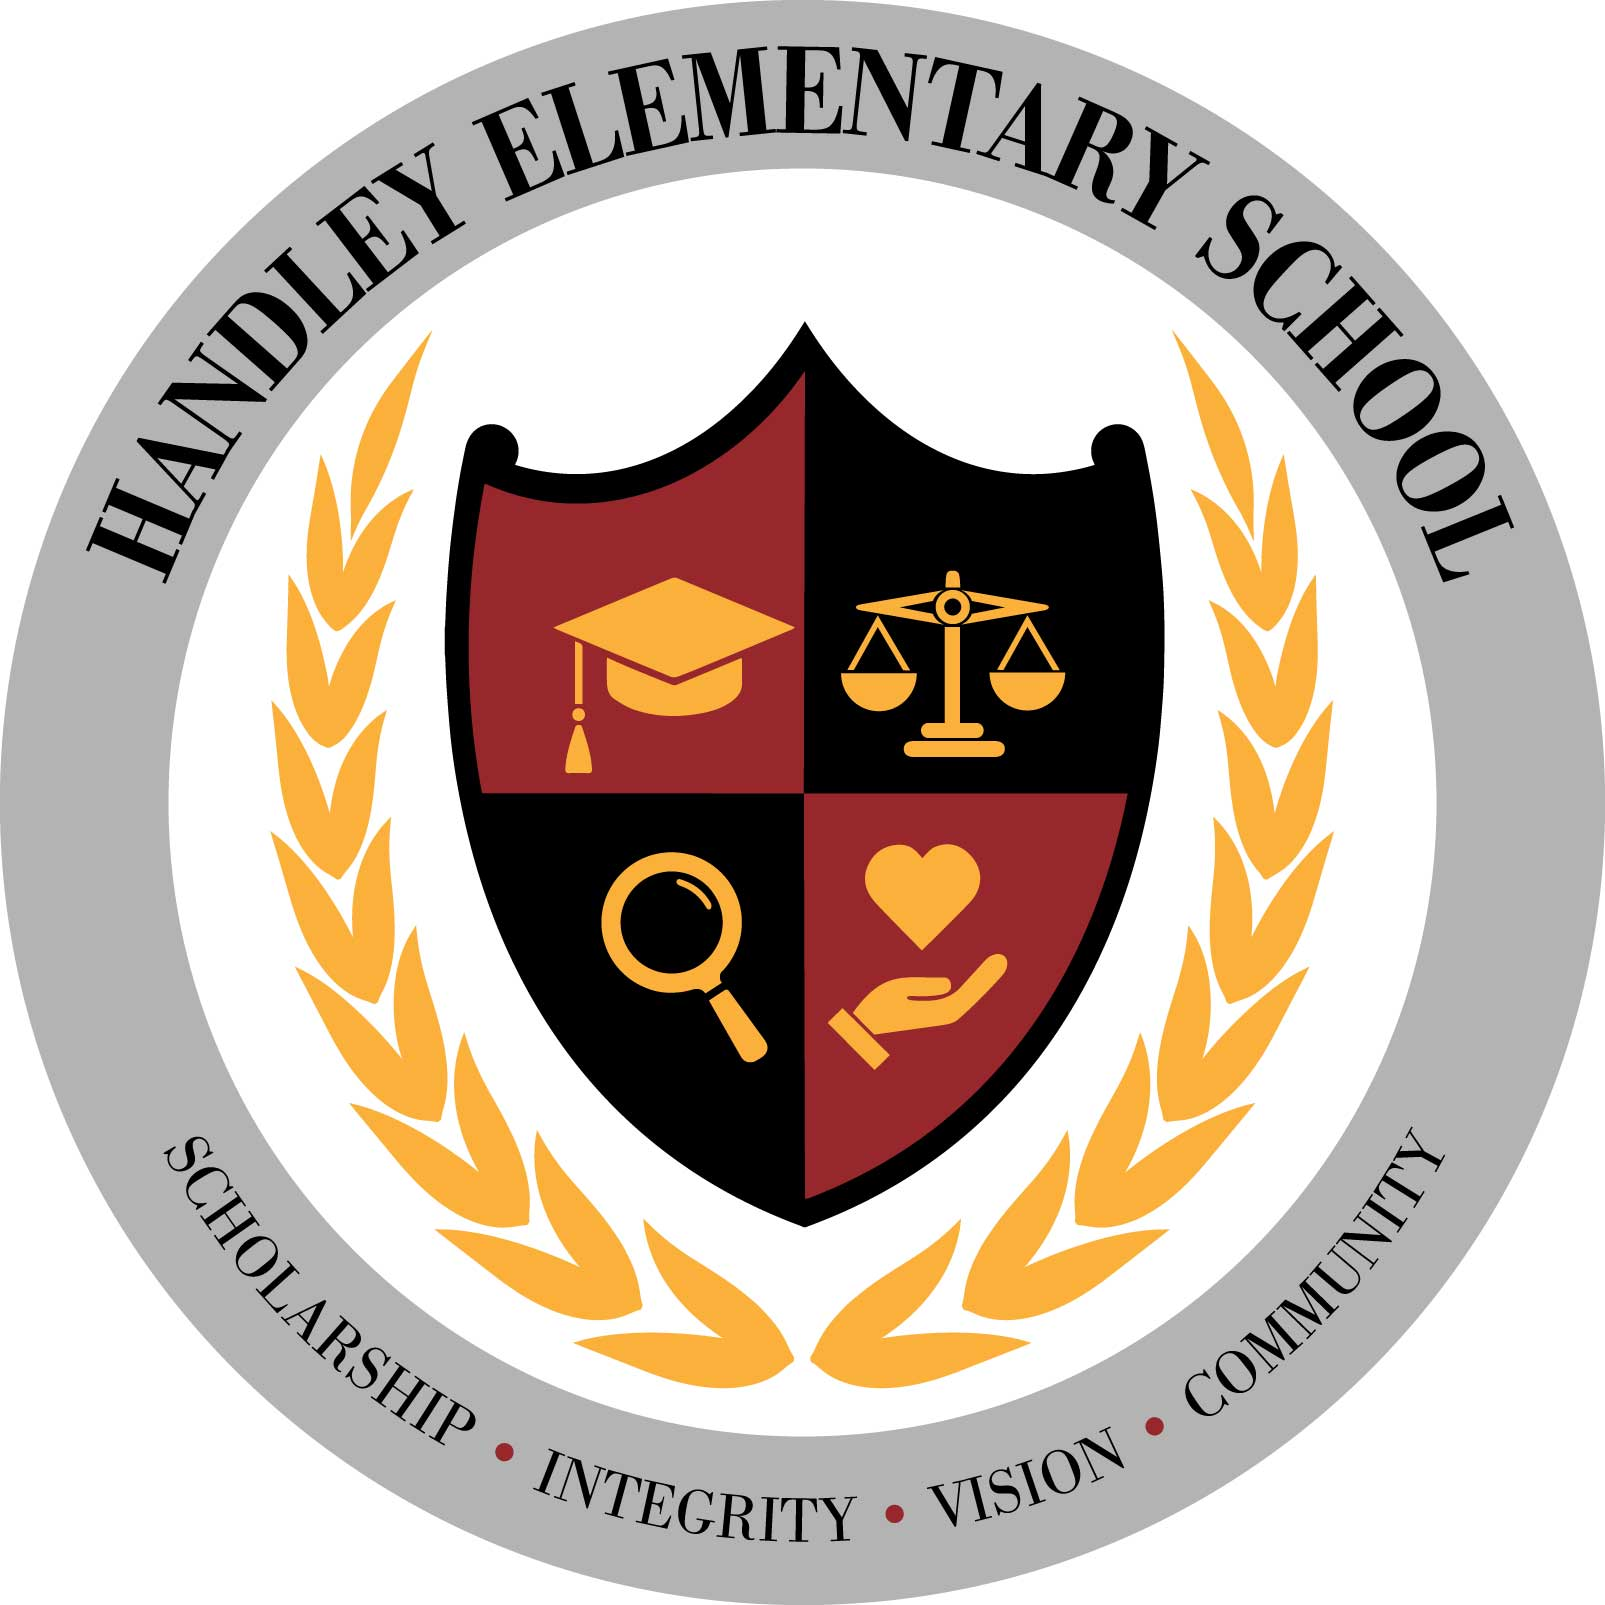 Handley crest Scholarship Integrity Vision Community